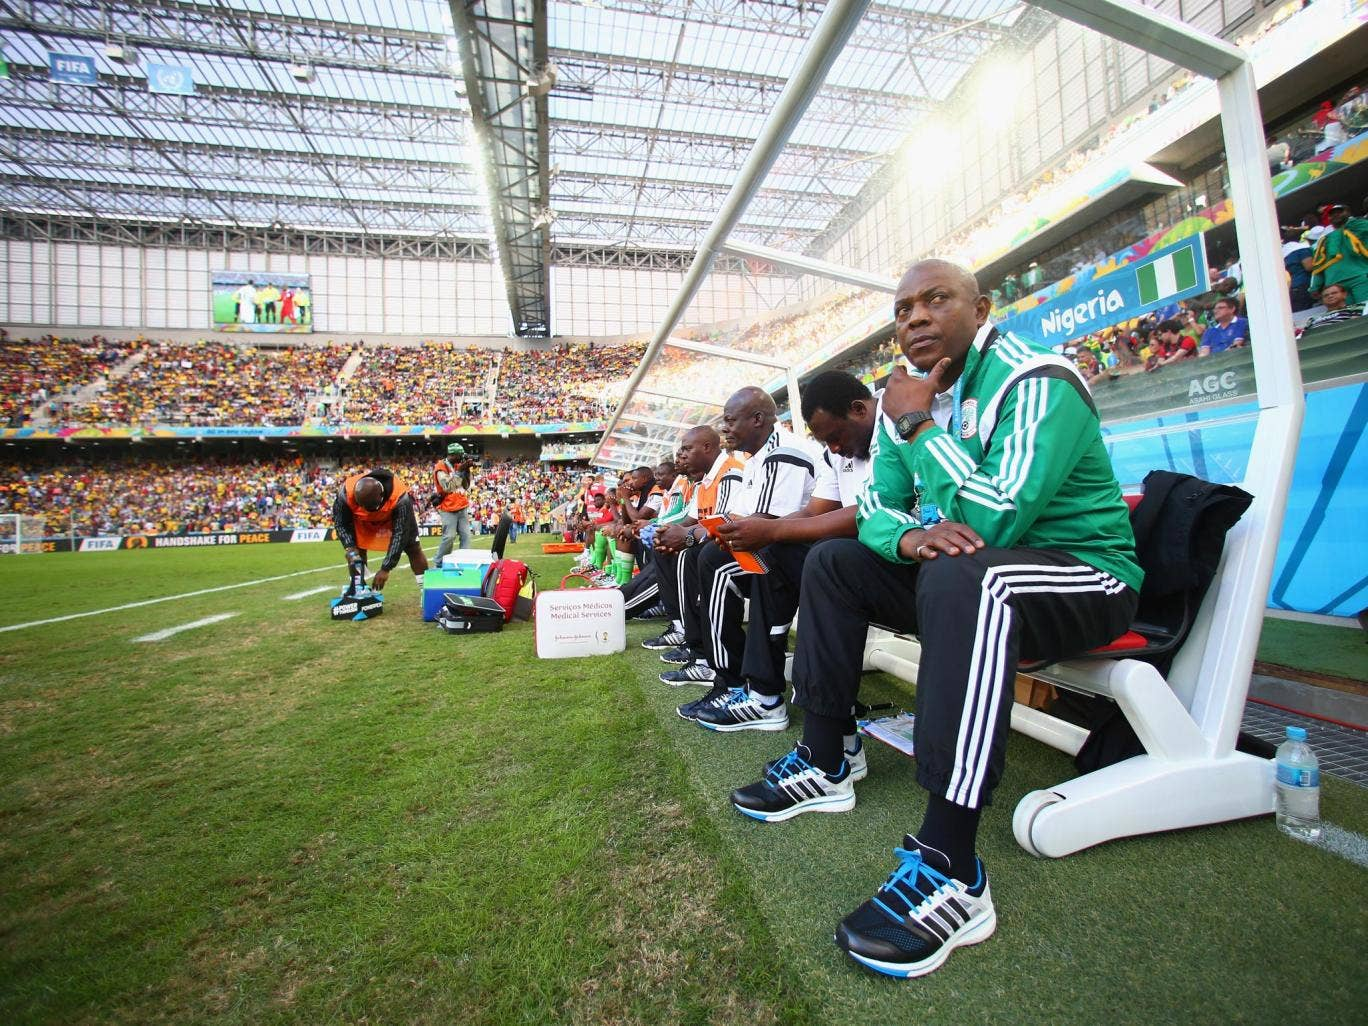 Stephen Keshi, the Nigeria coach, watches his side get held to a draw by Iran